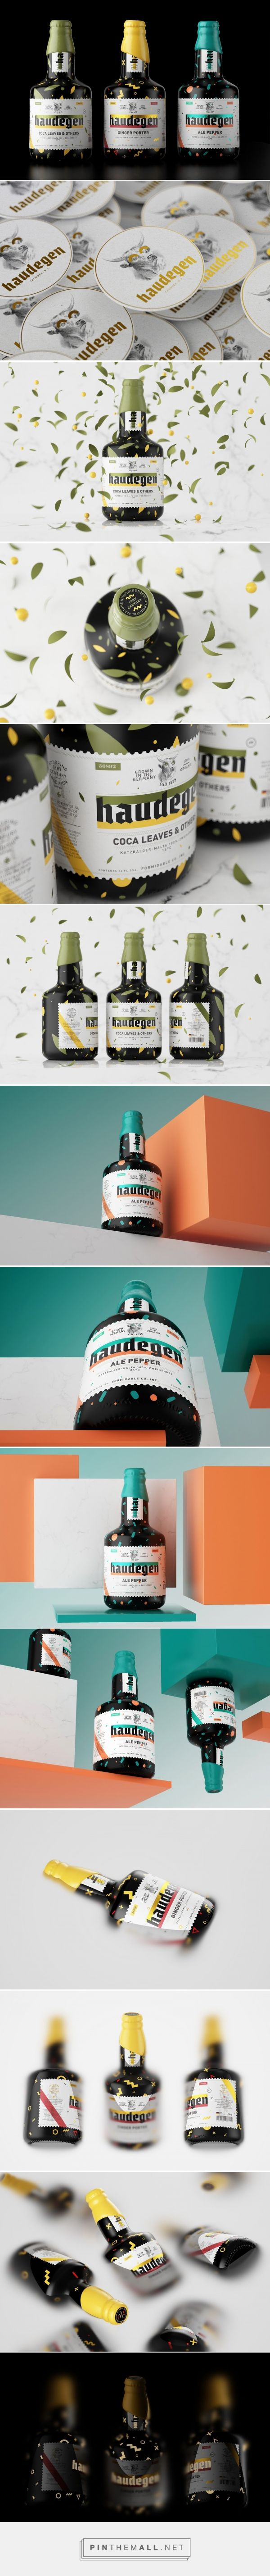 Haudegen Beer packaging design by Constantin Bolimond - http://www.packagingoftheworld.com/2017/02/haudegen-beer.html